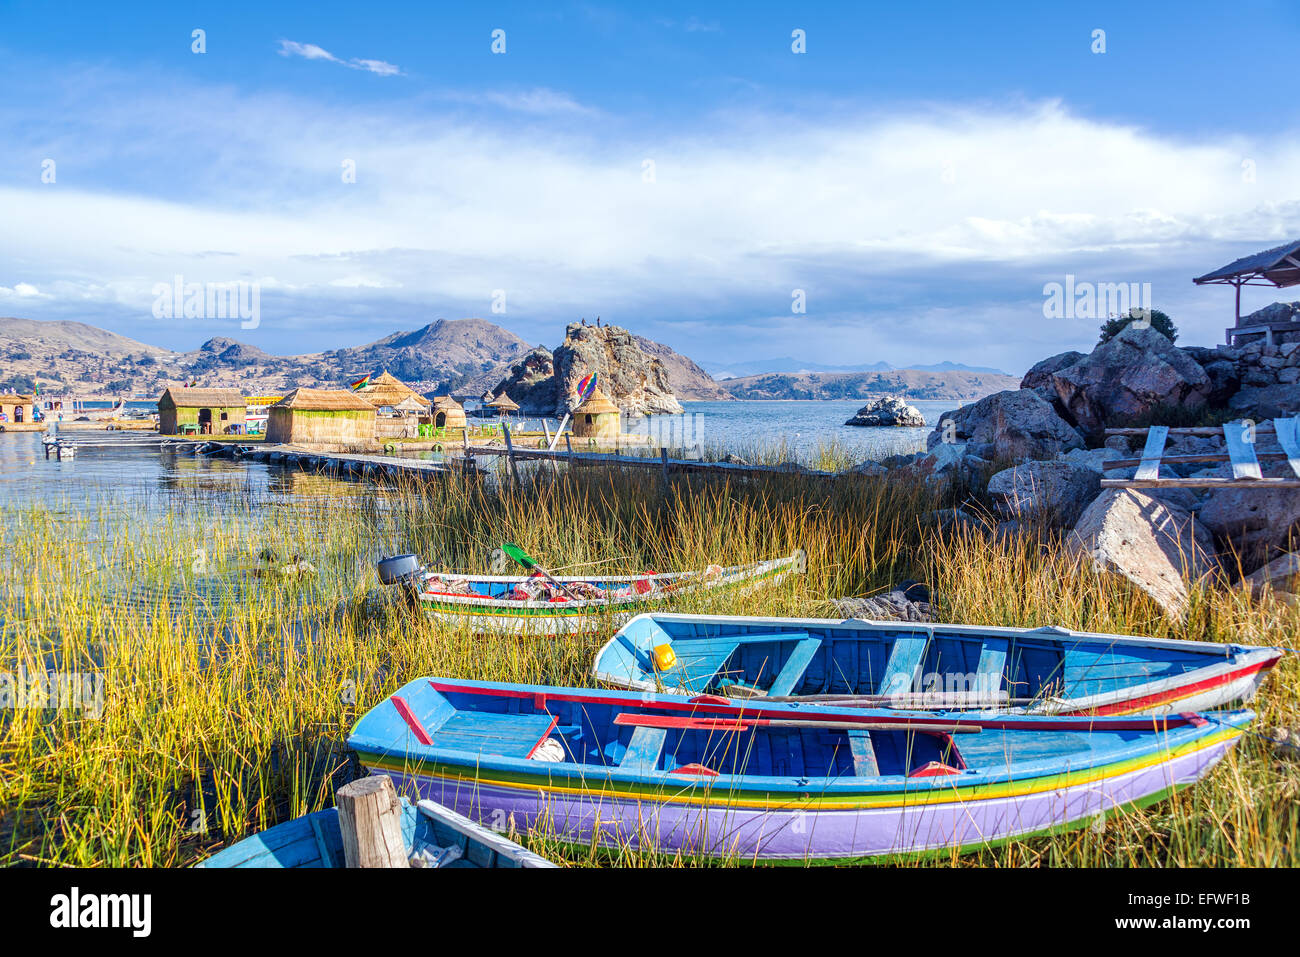 Colorful boats near floating islands on Lake Titicaca near Copacabana, Bolivia - Stock Image